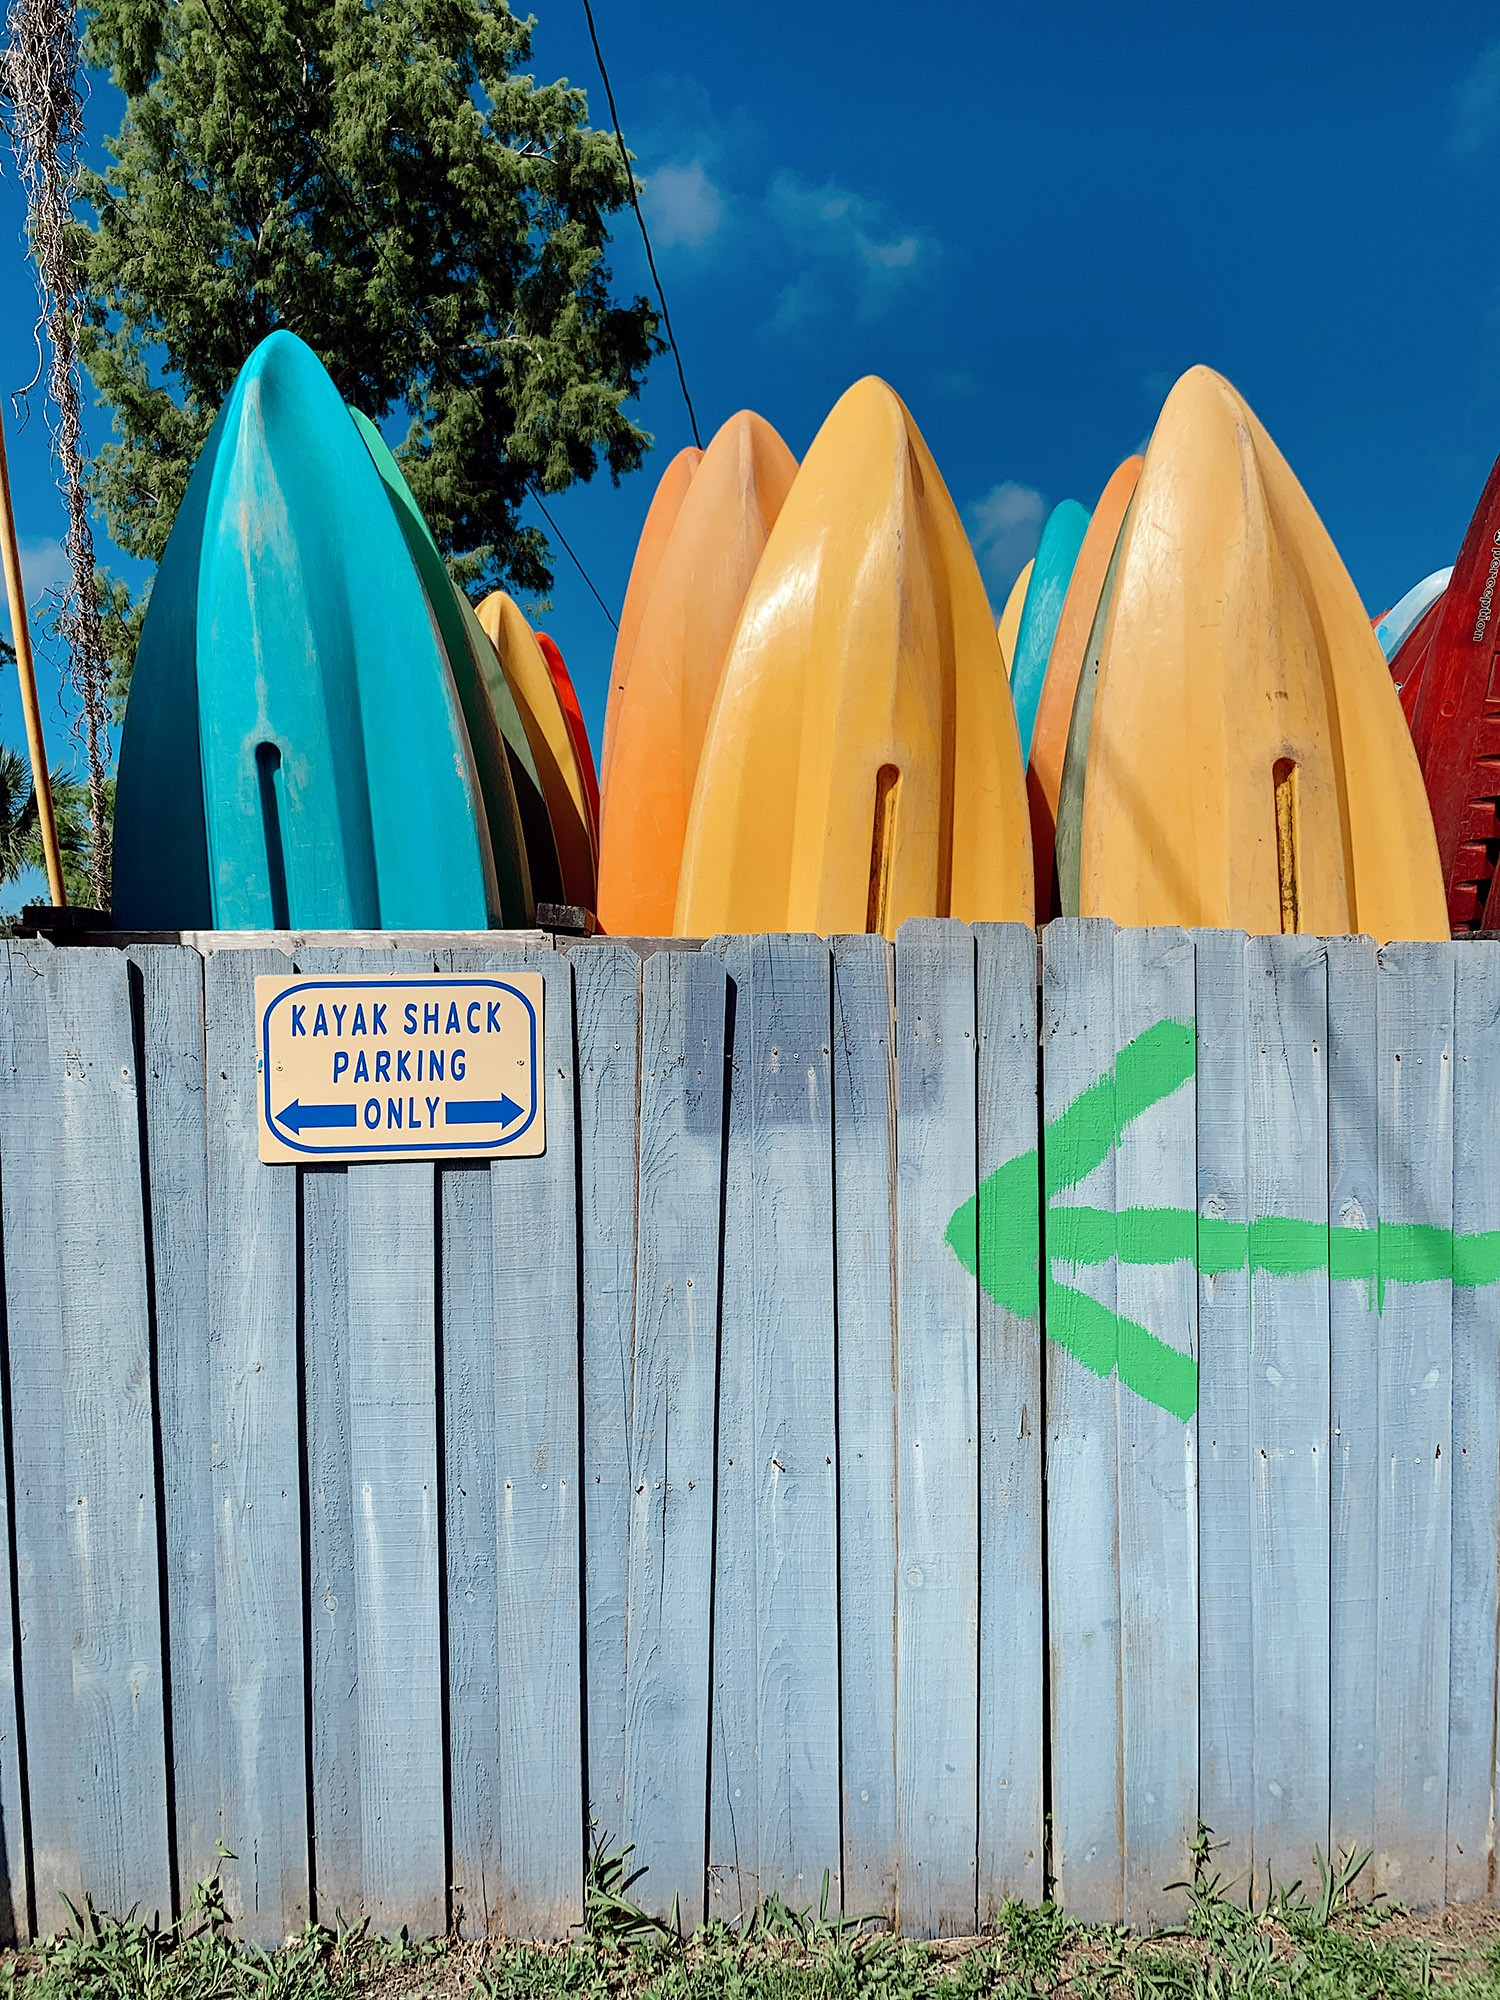 Tips for an Amazing Weeki Wachee Kayaking Florida Staycation. Visit Florida Travel ideas from top lifestyle blogger Tabitha Blue of Fresh Mommy Blog.   Weeki Wachee Kayaking by popular Florida blog, Fresh Mommy Blog: image of kayaks leaning up against a wooden fence.